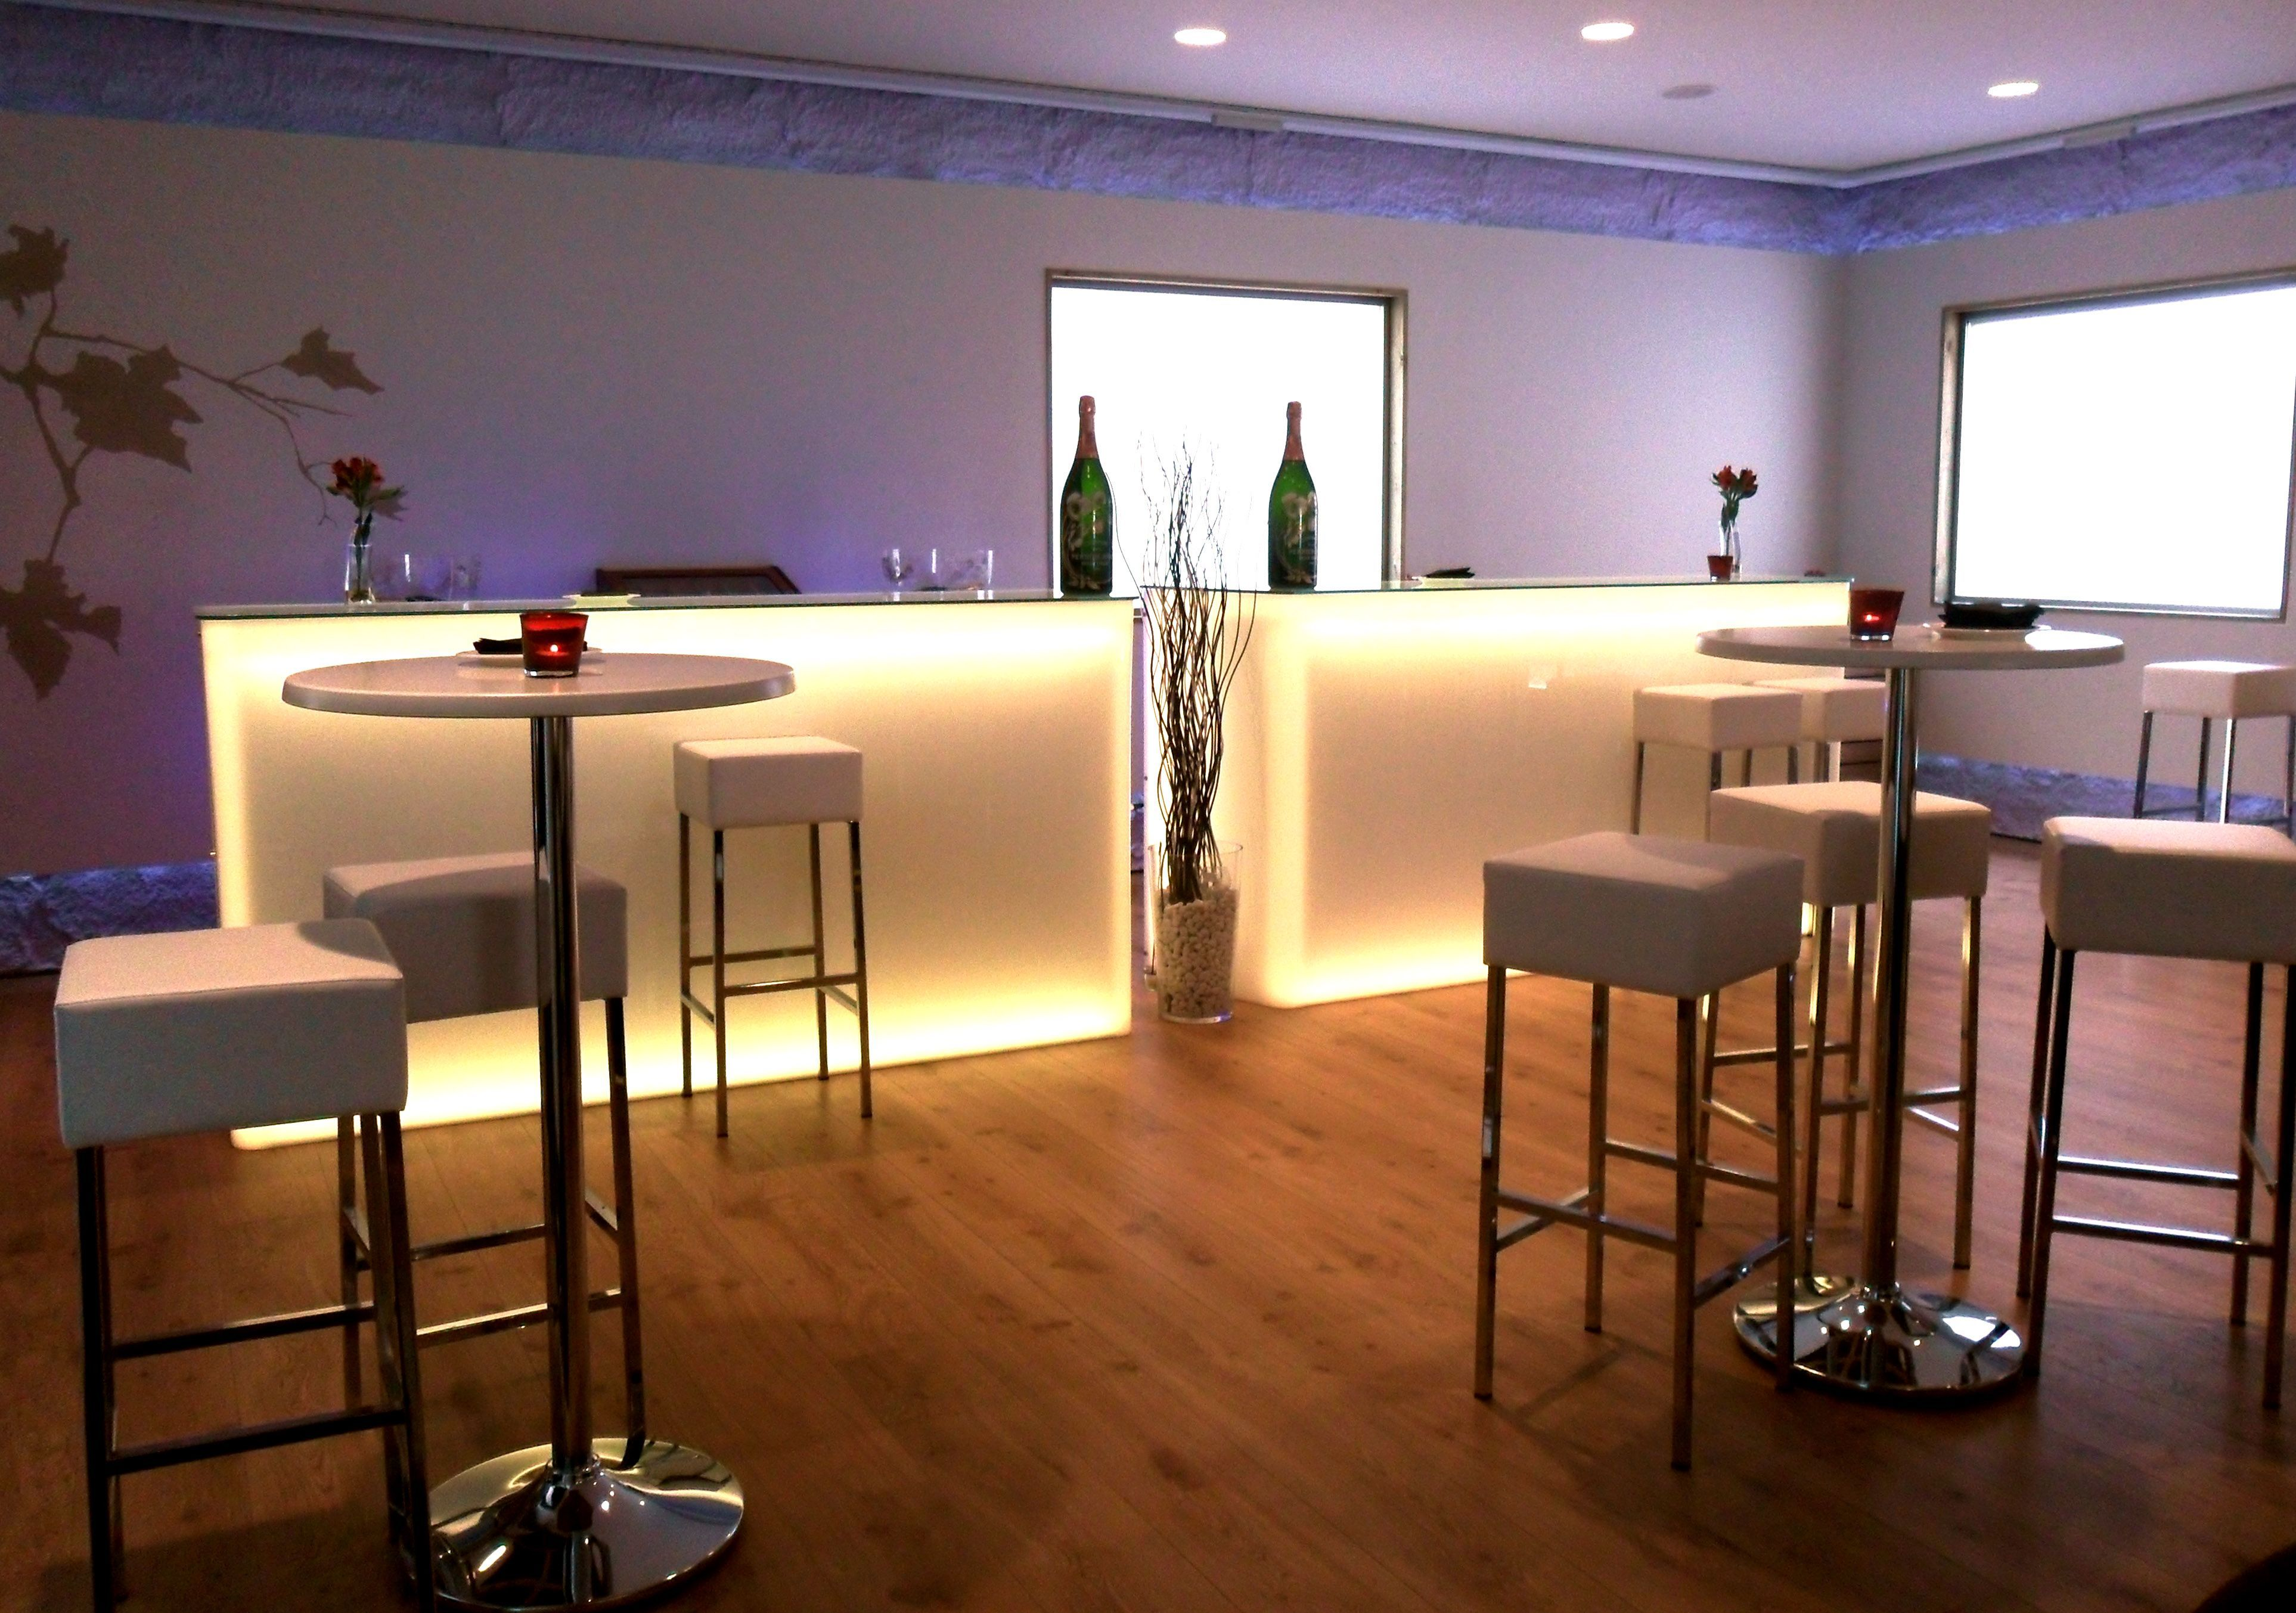 1000 images about lounge bar on pinterest - Barras de bar para casa ...